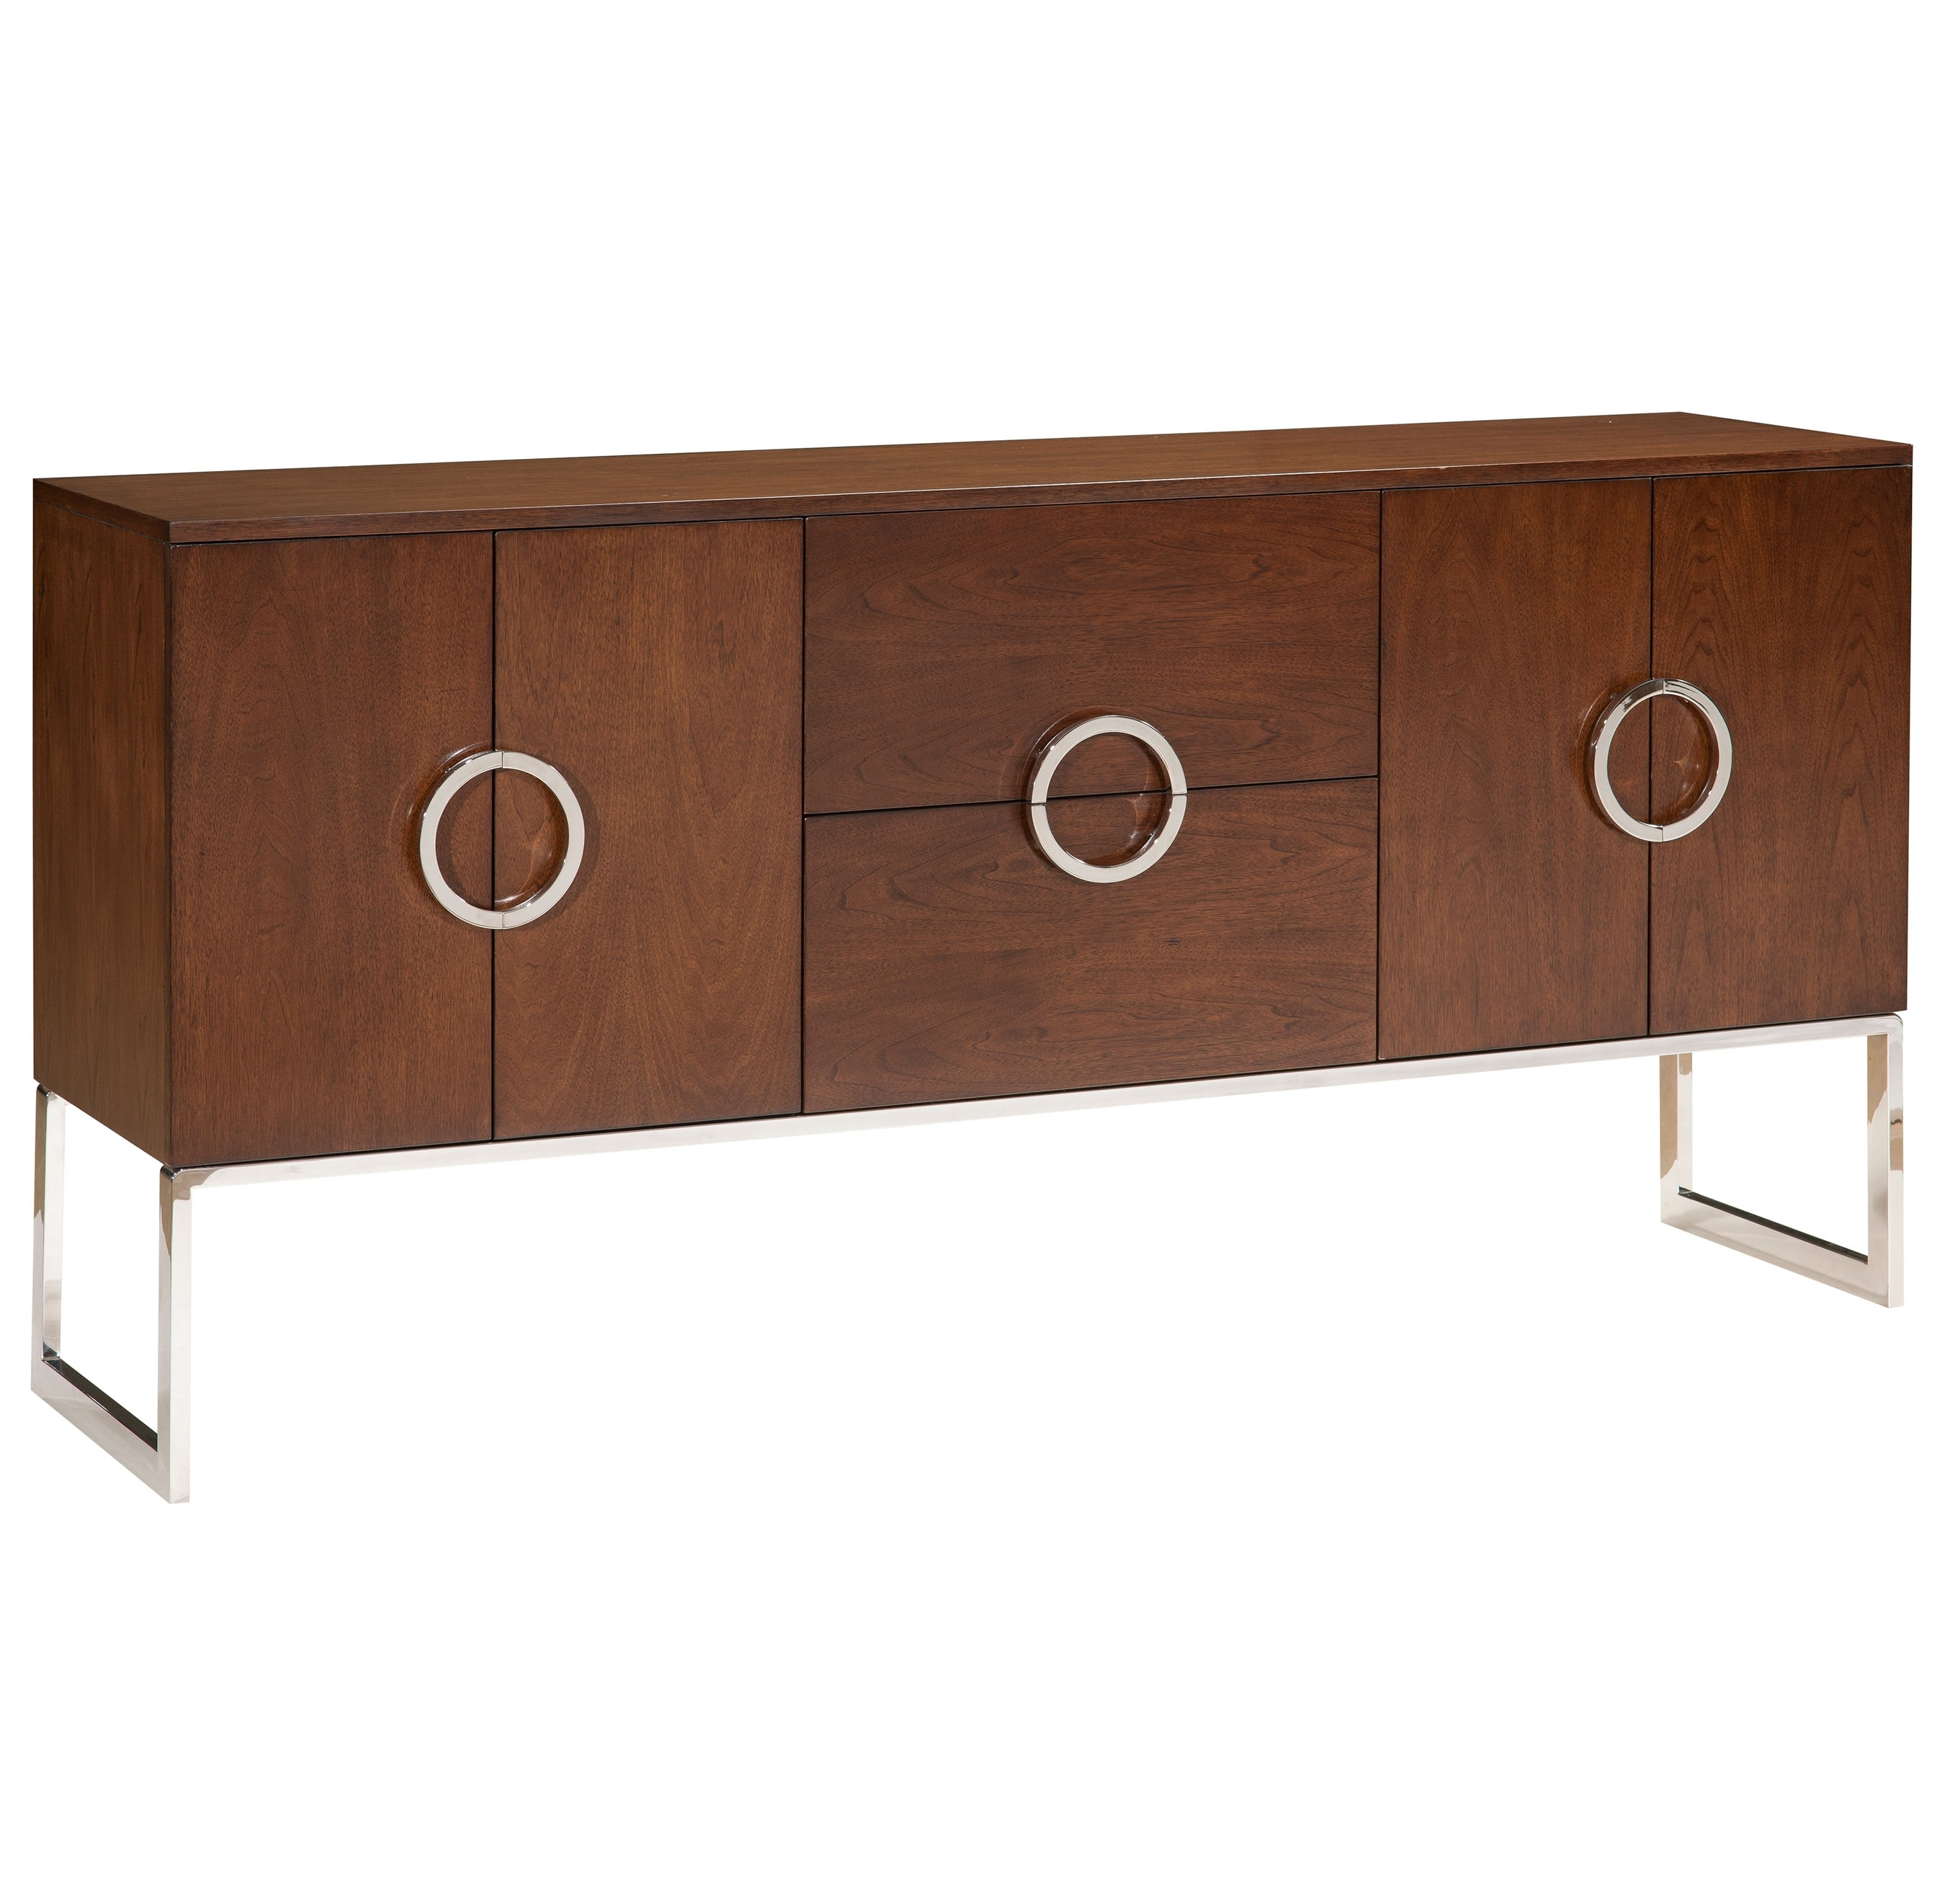 Buffets & Sideboards | Kathy Kuo Home regarding 4-Door 4-Drawer Metal Inserts Sideboards (Image 4 of 30)